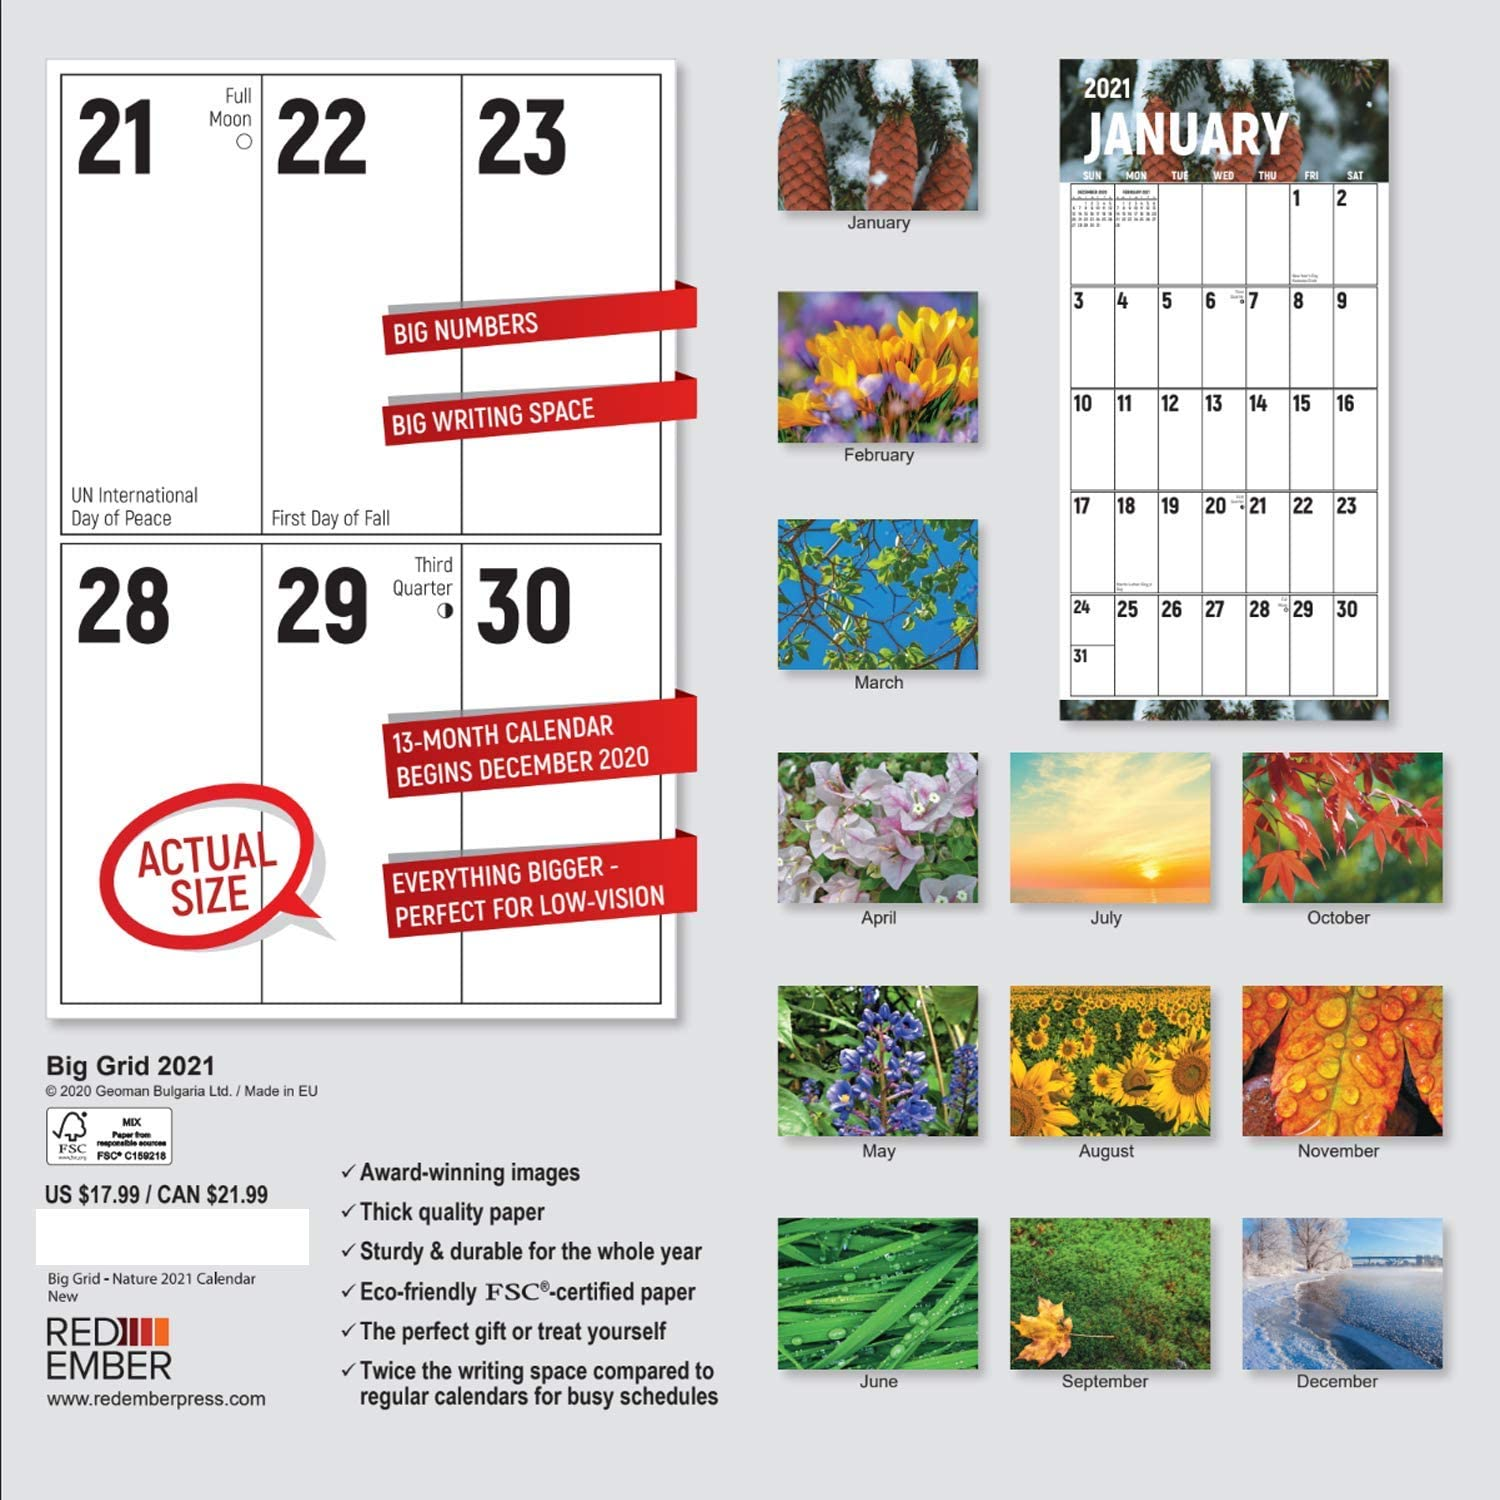 2021 Hangable Wall Calendars by Red Ember Press The Big Grid Jumbo Large Print- Beauty of Nature Thick /& Sturdy Glossy Paper 12 x 24 When Open Beautiful Nature /& Double the Writing Space